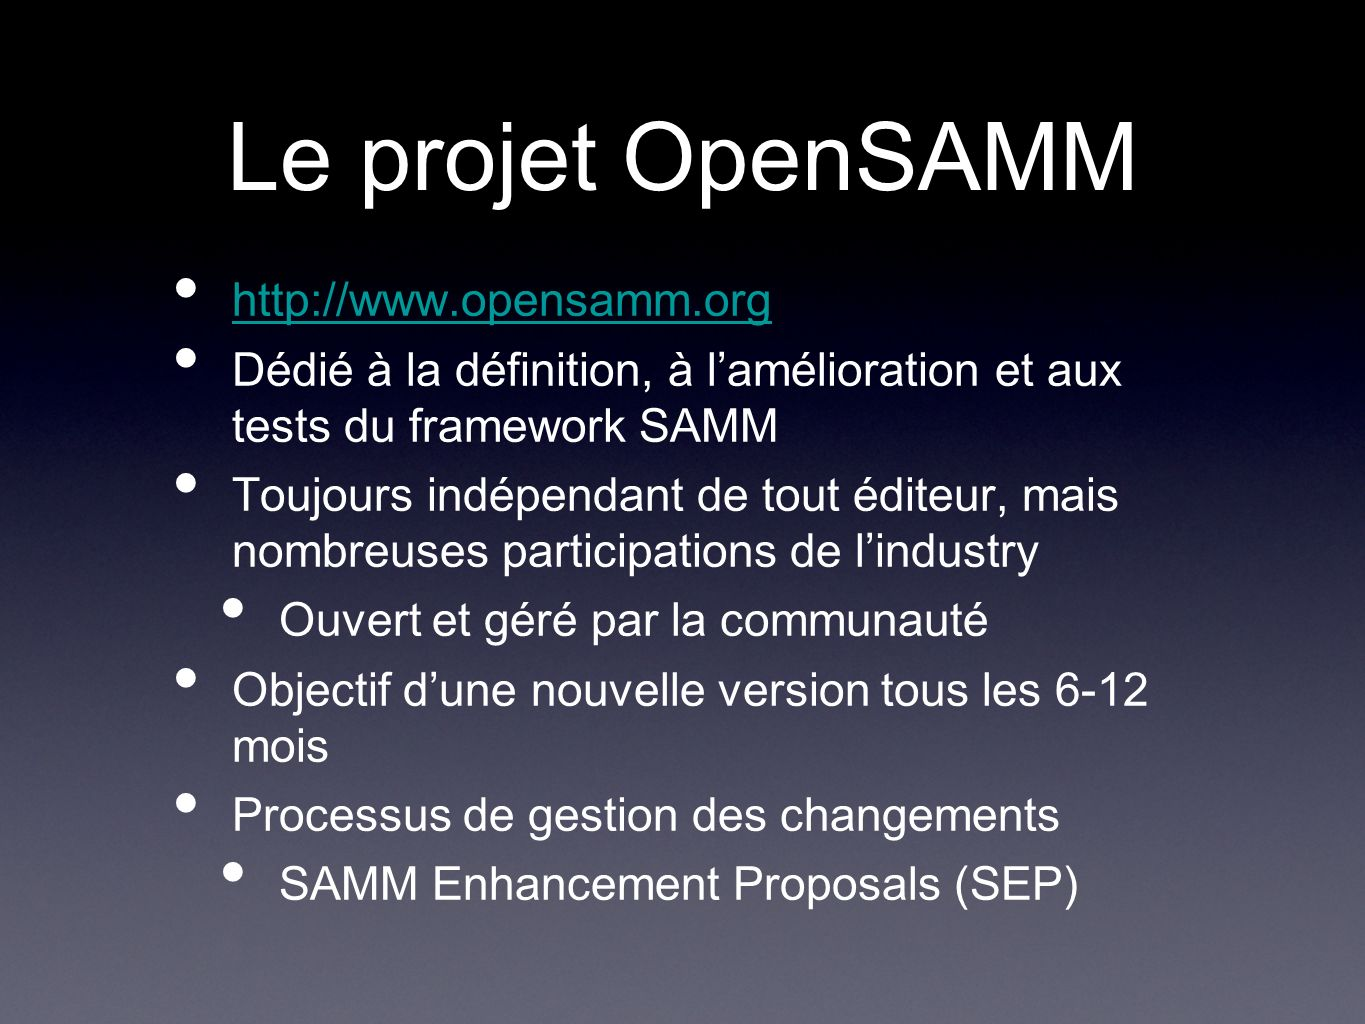 Le projet OpenSAMM http://www.opensamm.org